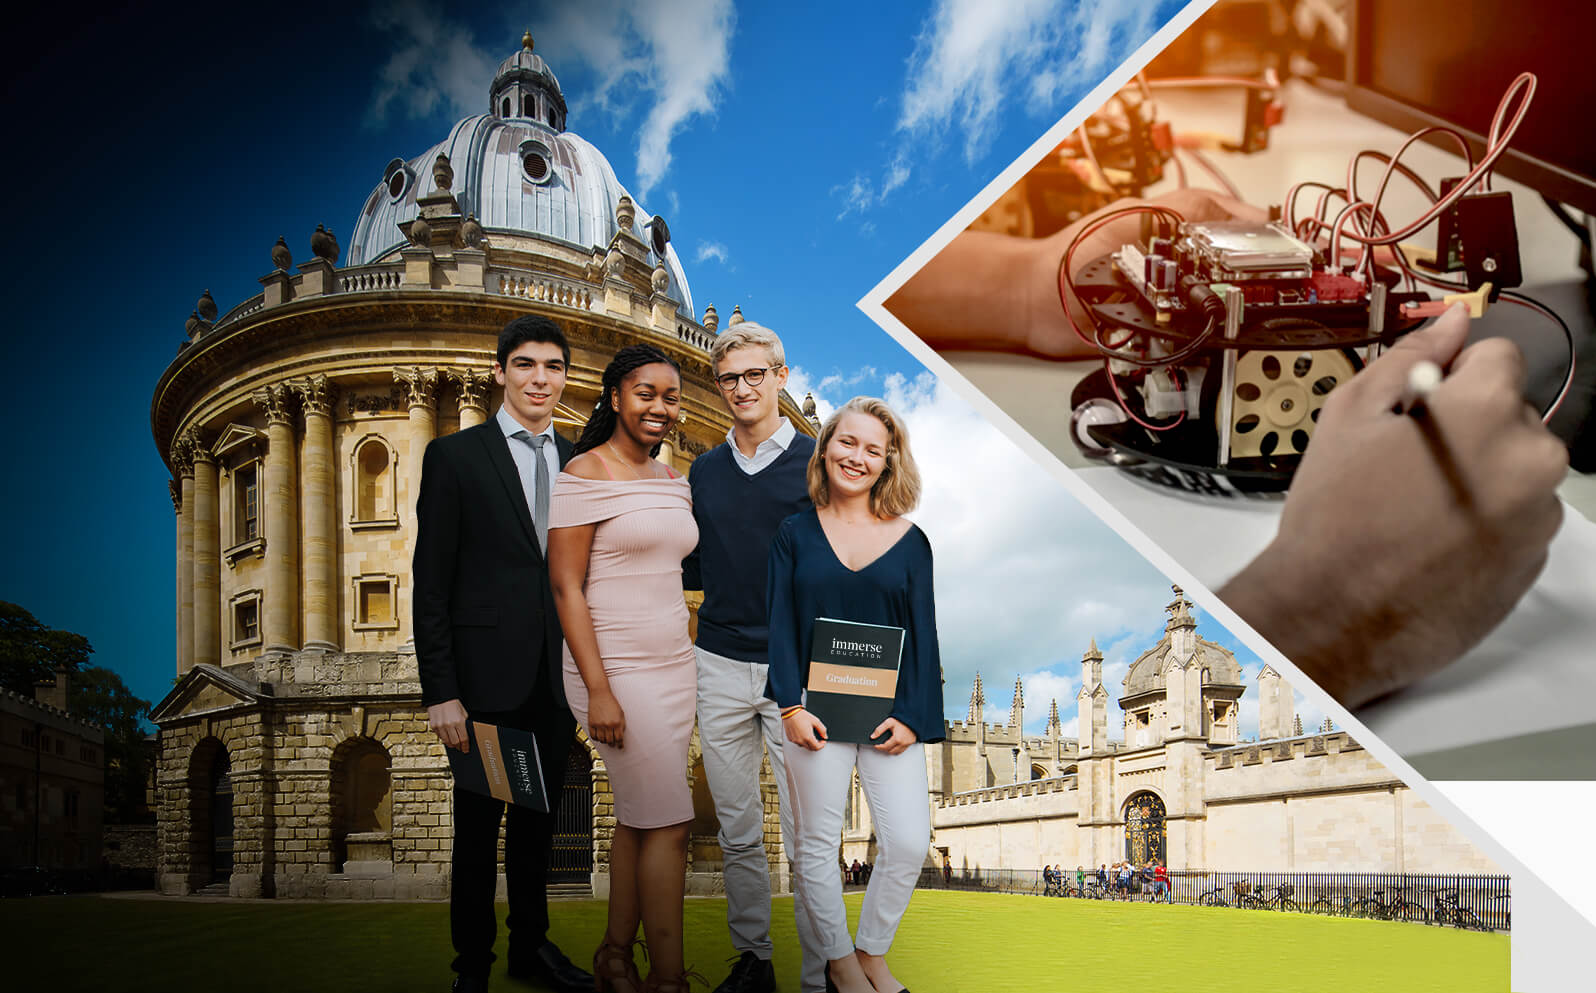 Oxford Engineering Summer Program for Ages 16-18